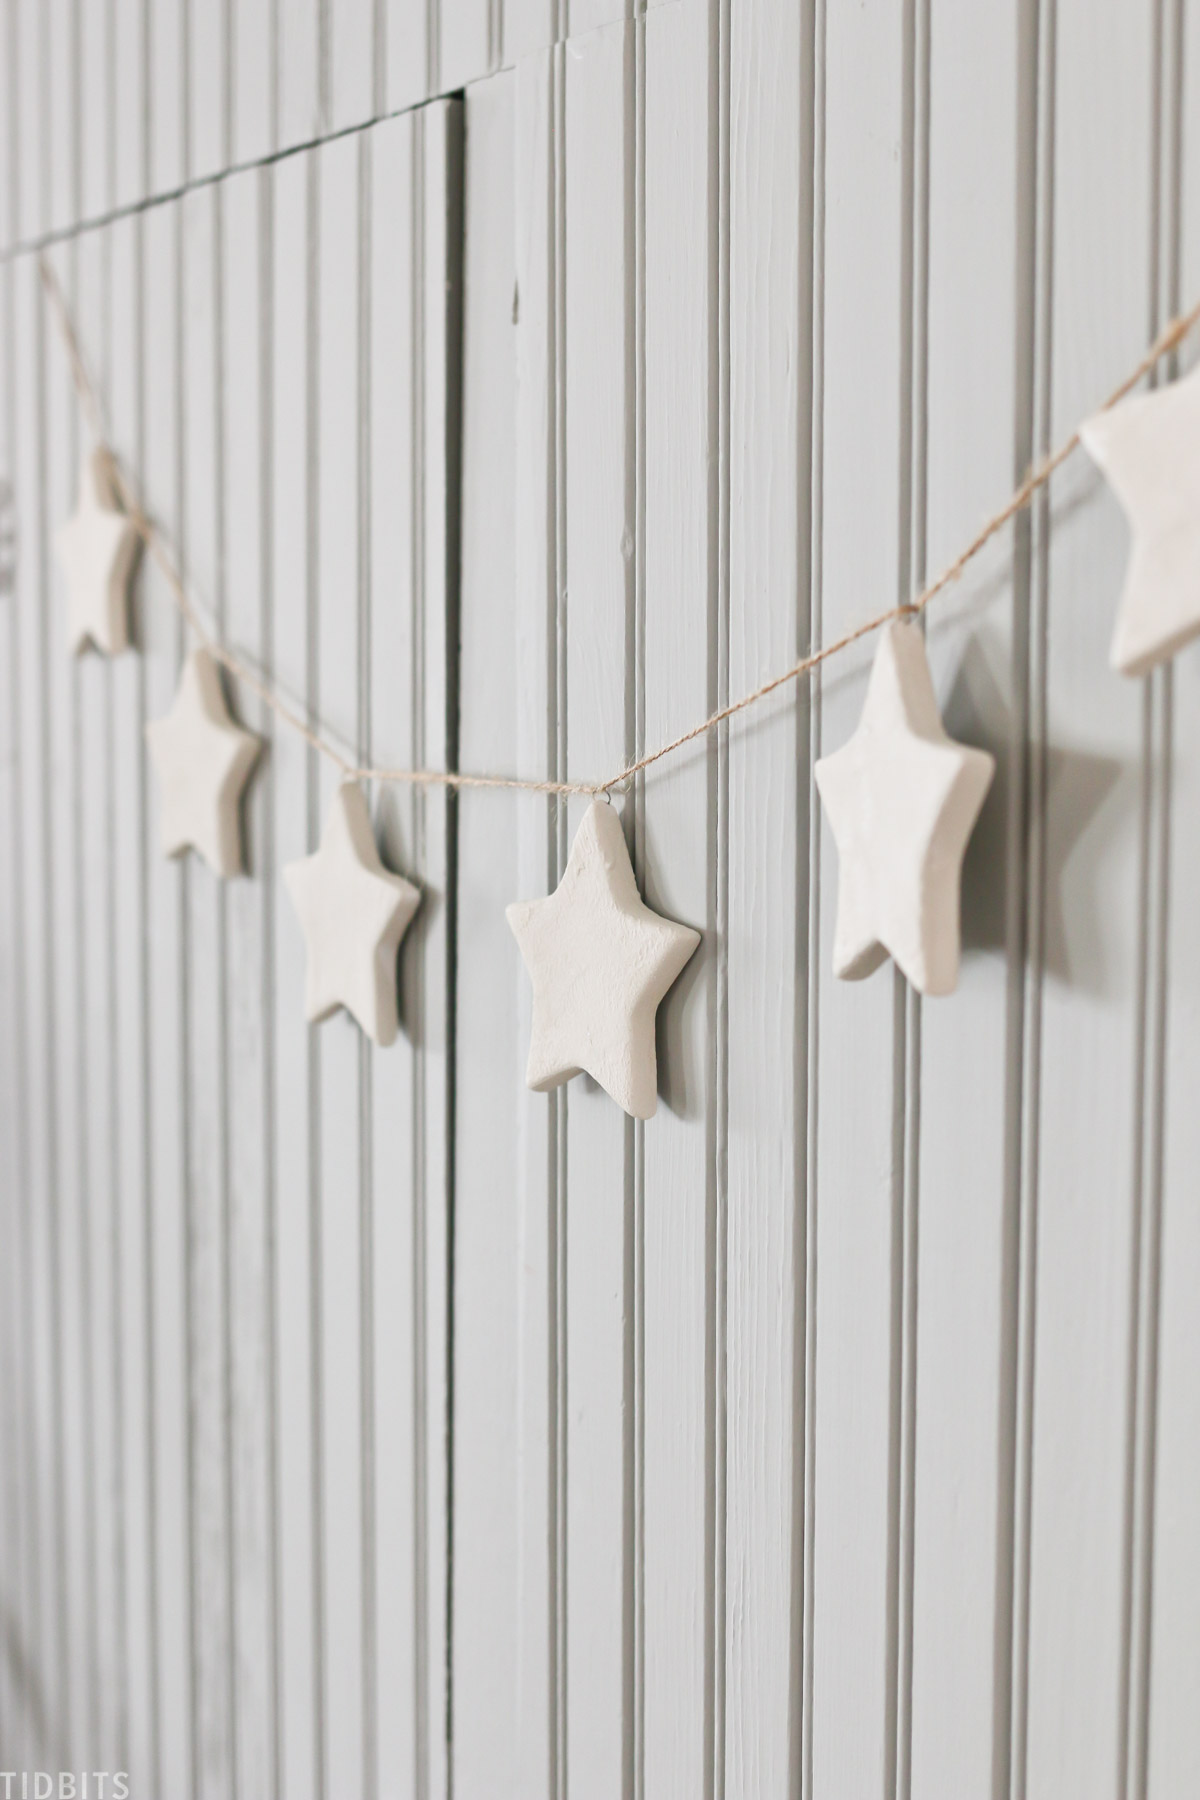 ceramic Christmas star ornaments hanging on furniture in living room with other holiday decor showing details on the stars